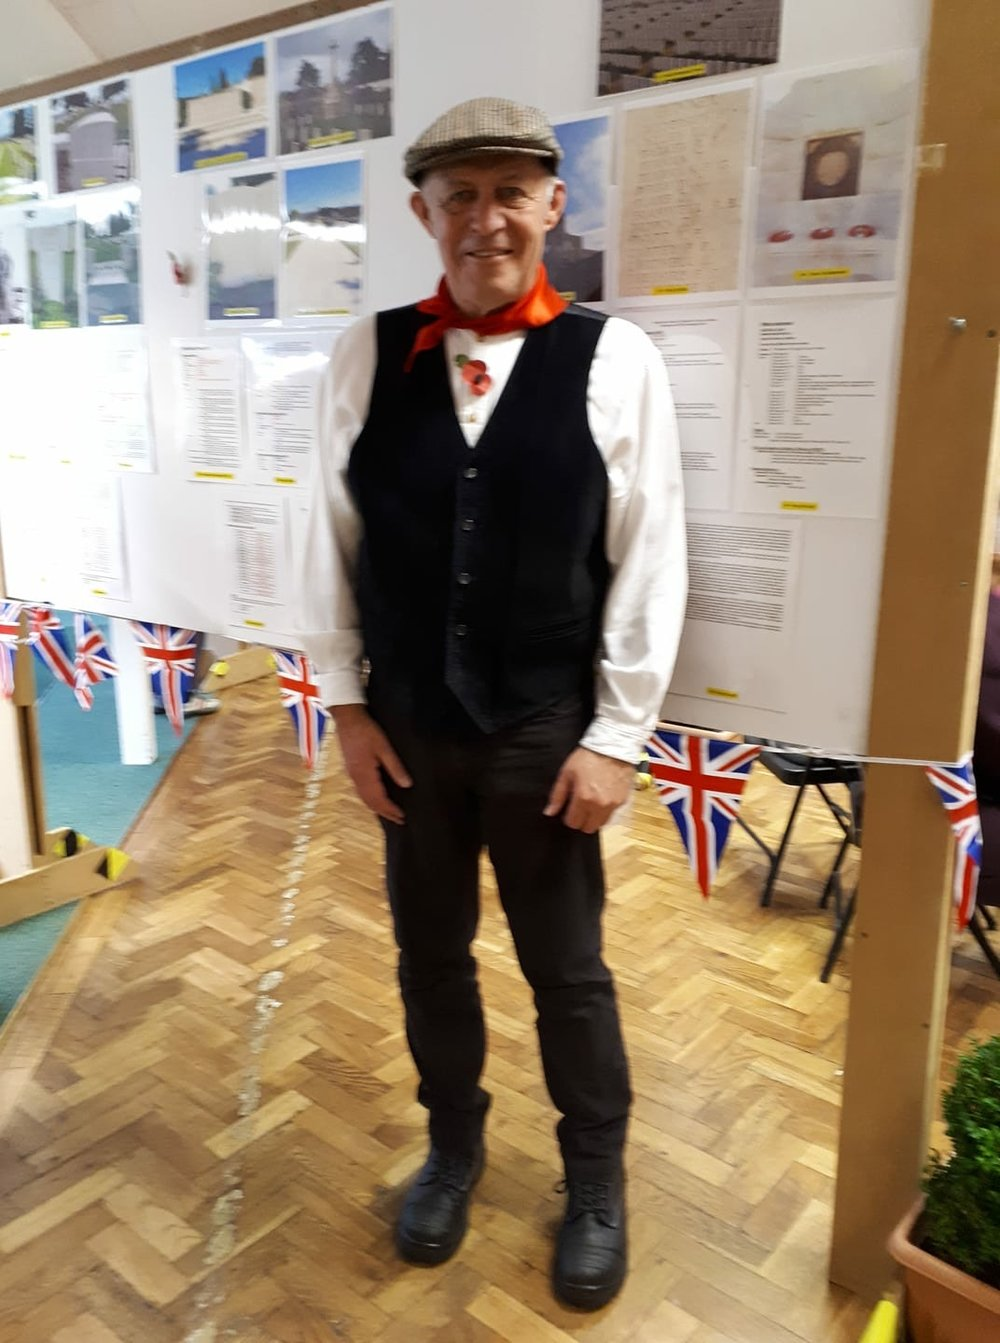 Mr Mole Chairman of Oakley Parish Council and one of the organiser's of the Armistice Day Weekend Events